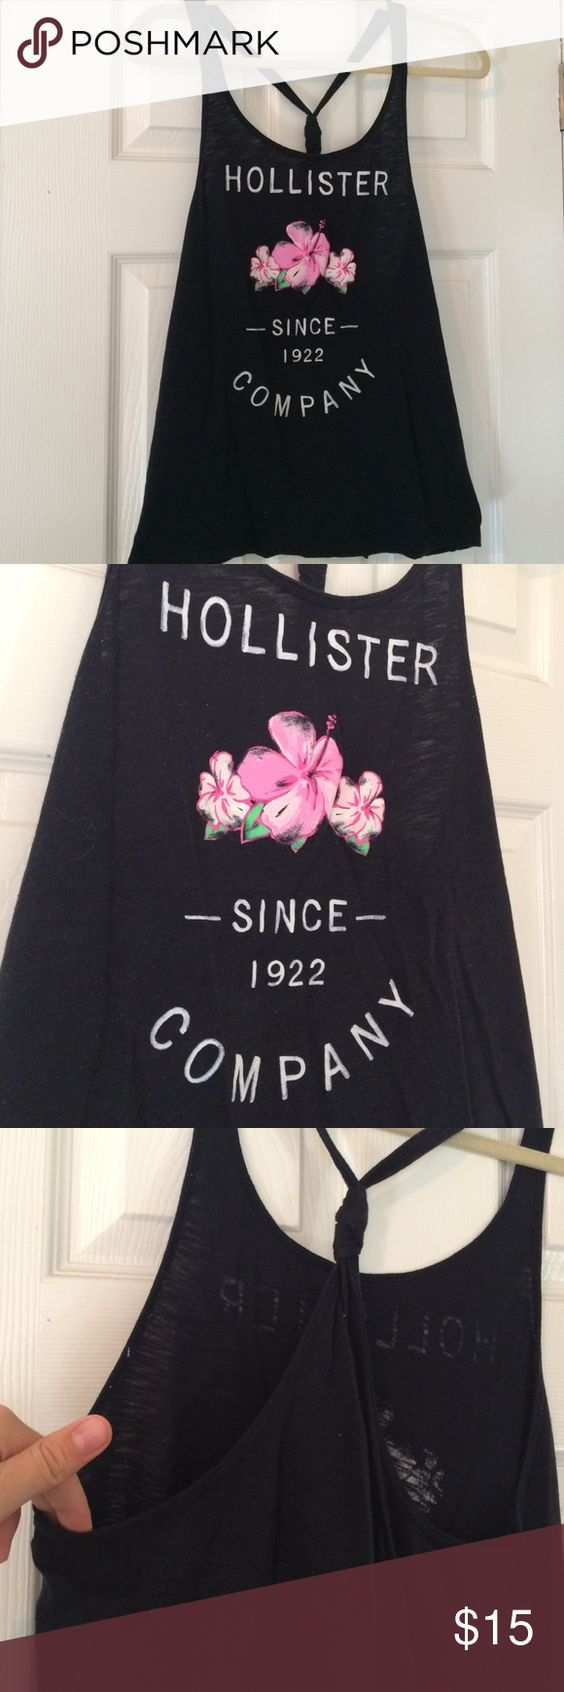 Knot-Backed Hollister Tank Top Super flowy and good for runs or lounging around. Hollister Tops Tank Tops